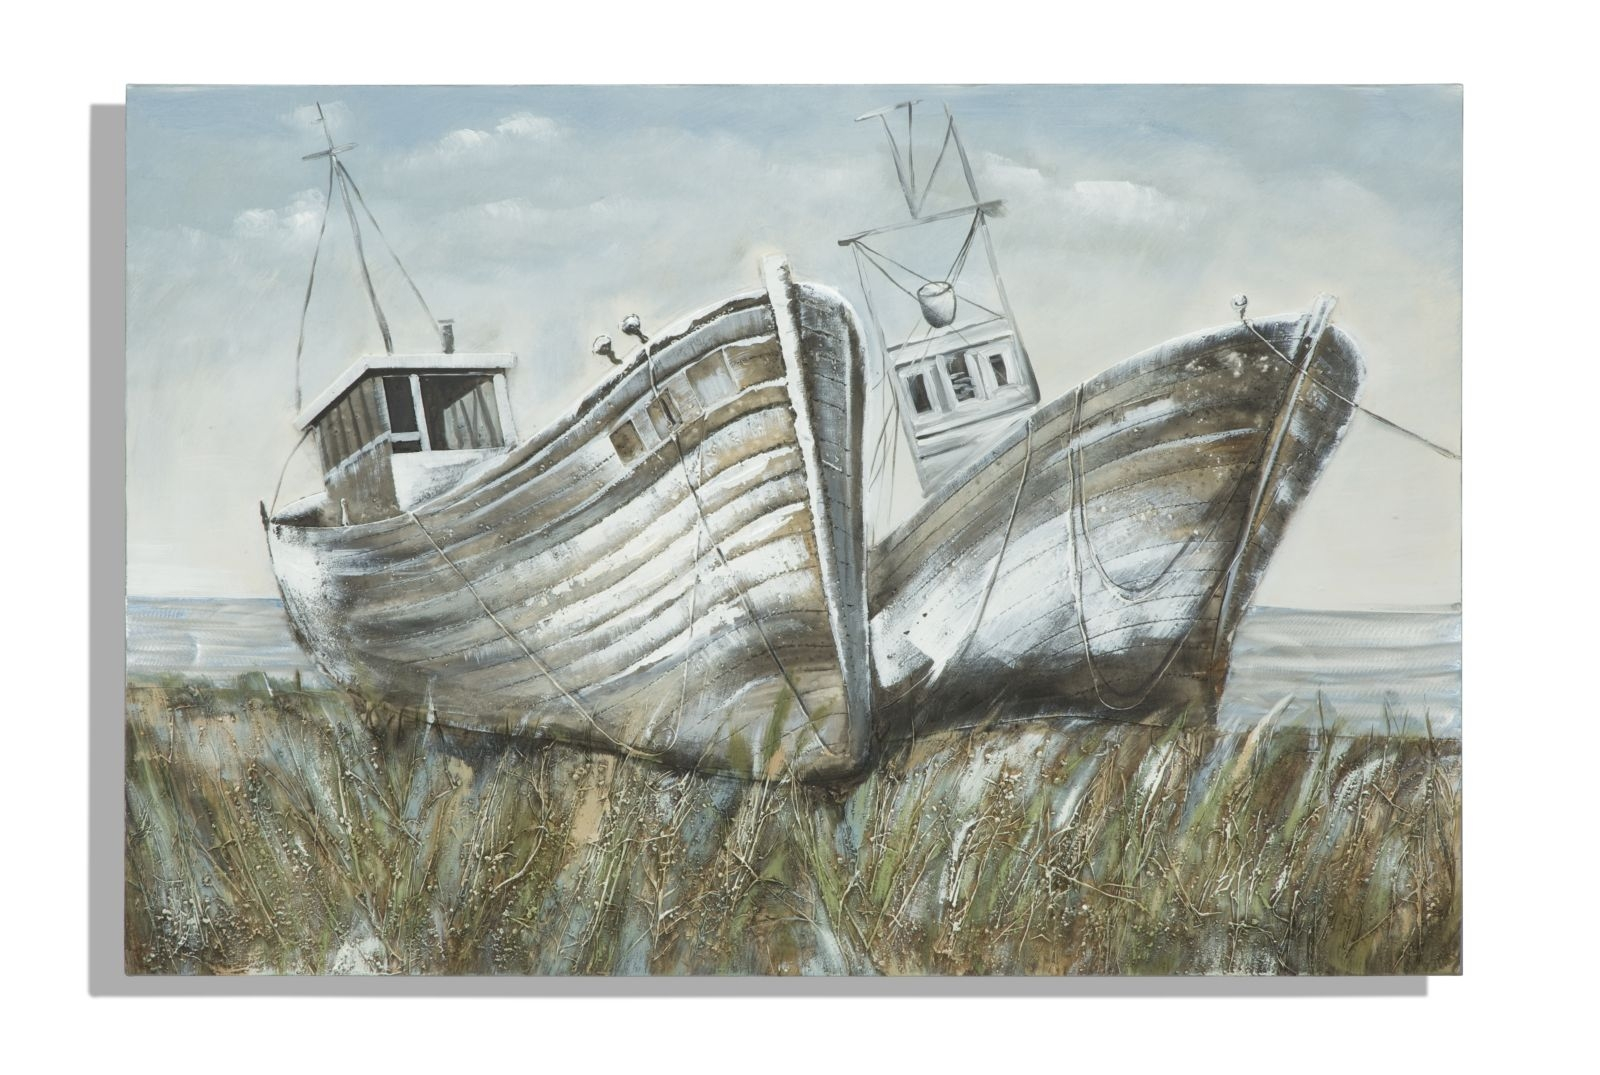 Tablou pictat manual Two Boats, 80×120 cm